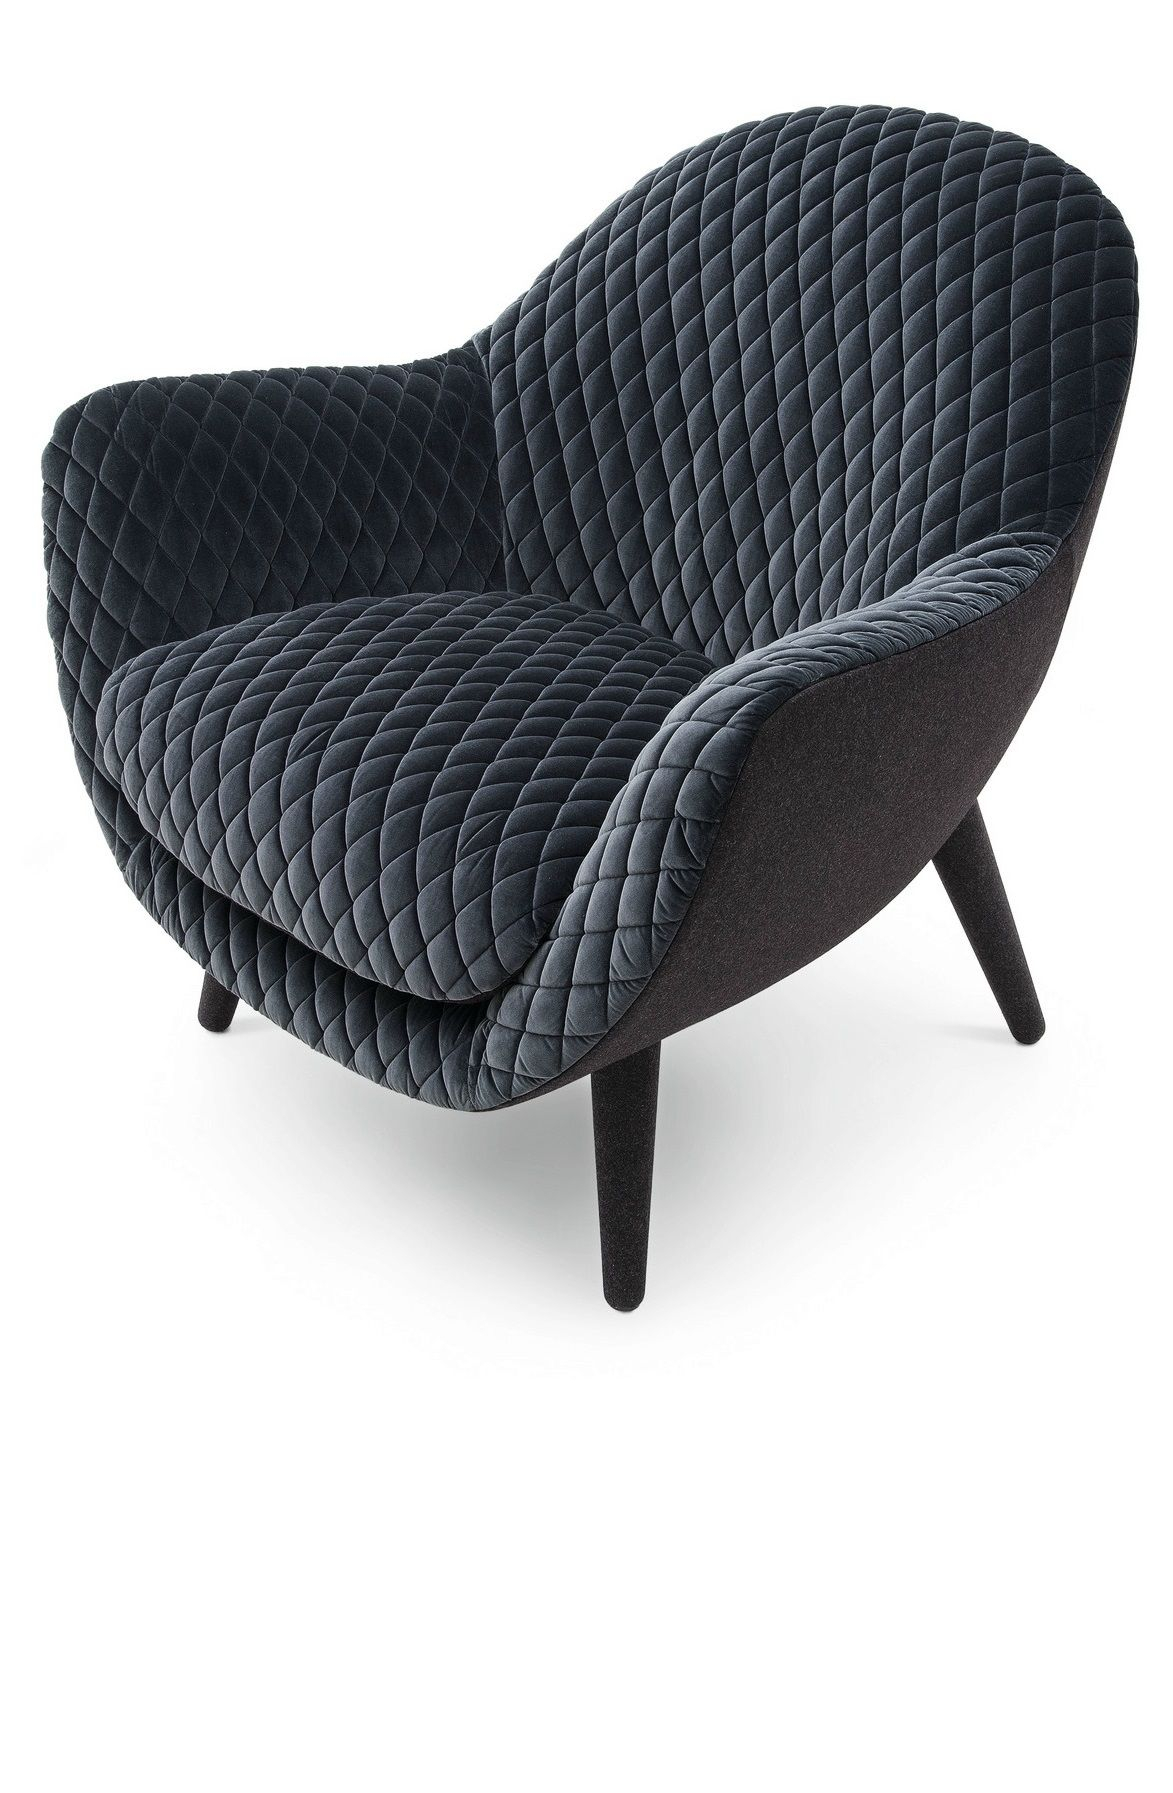 Mad Queen Chairmarcel Wanders For Poliform In Matelasse Gibson Within Gibson Swivel Cuddler Chairs (View 15 of 20)